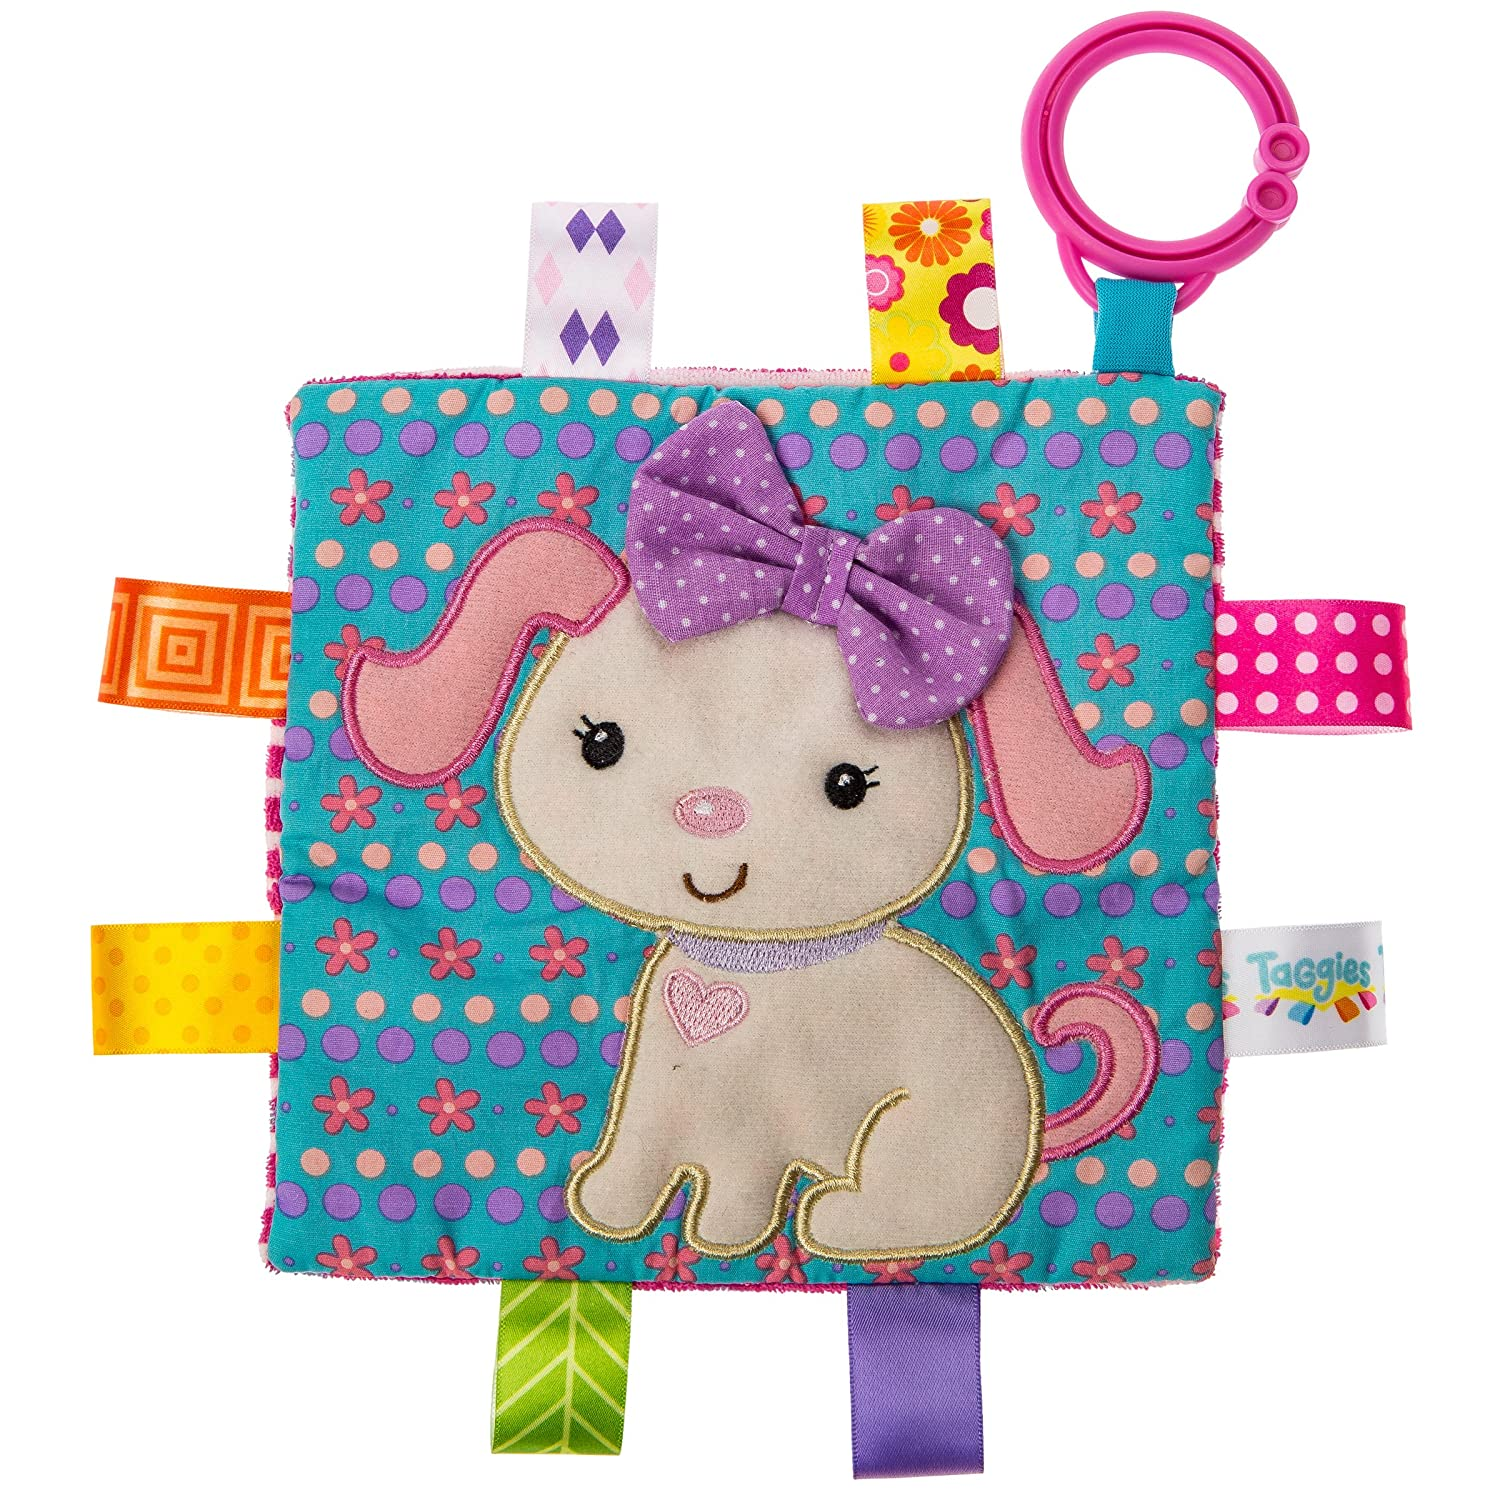 Mary Meyer Taggies Crinkle Me Baby Toy, Sister Puppy 40172